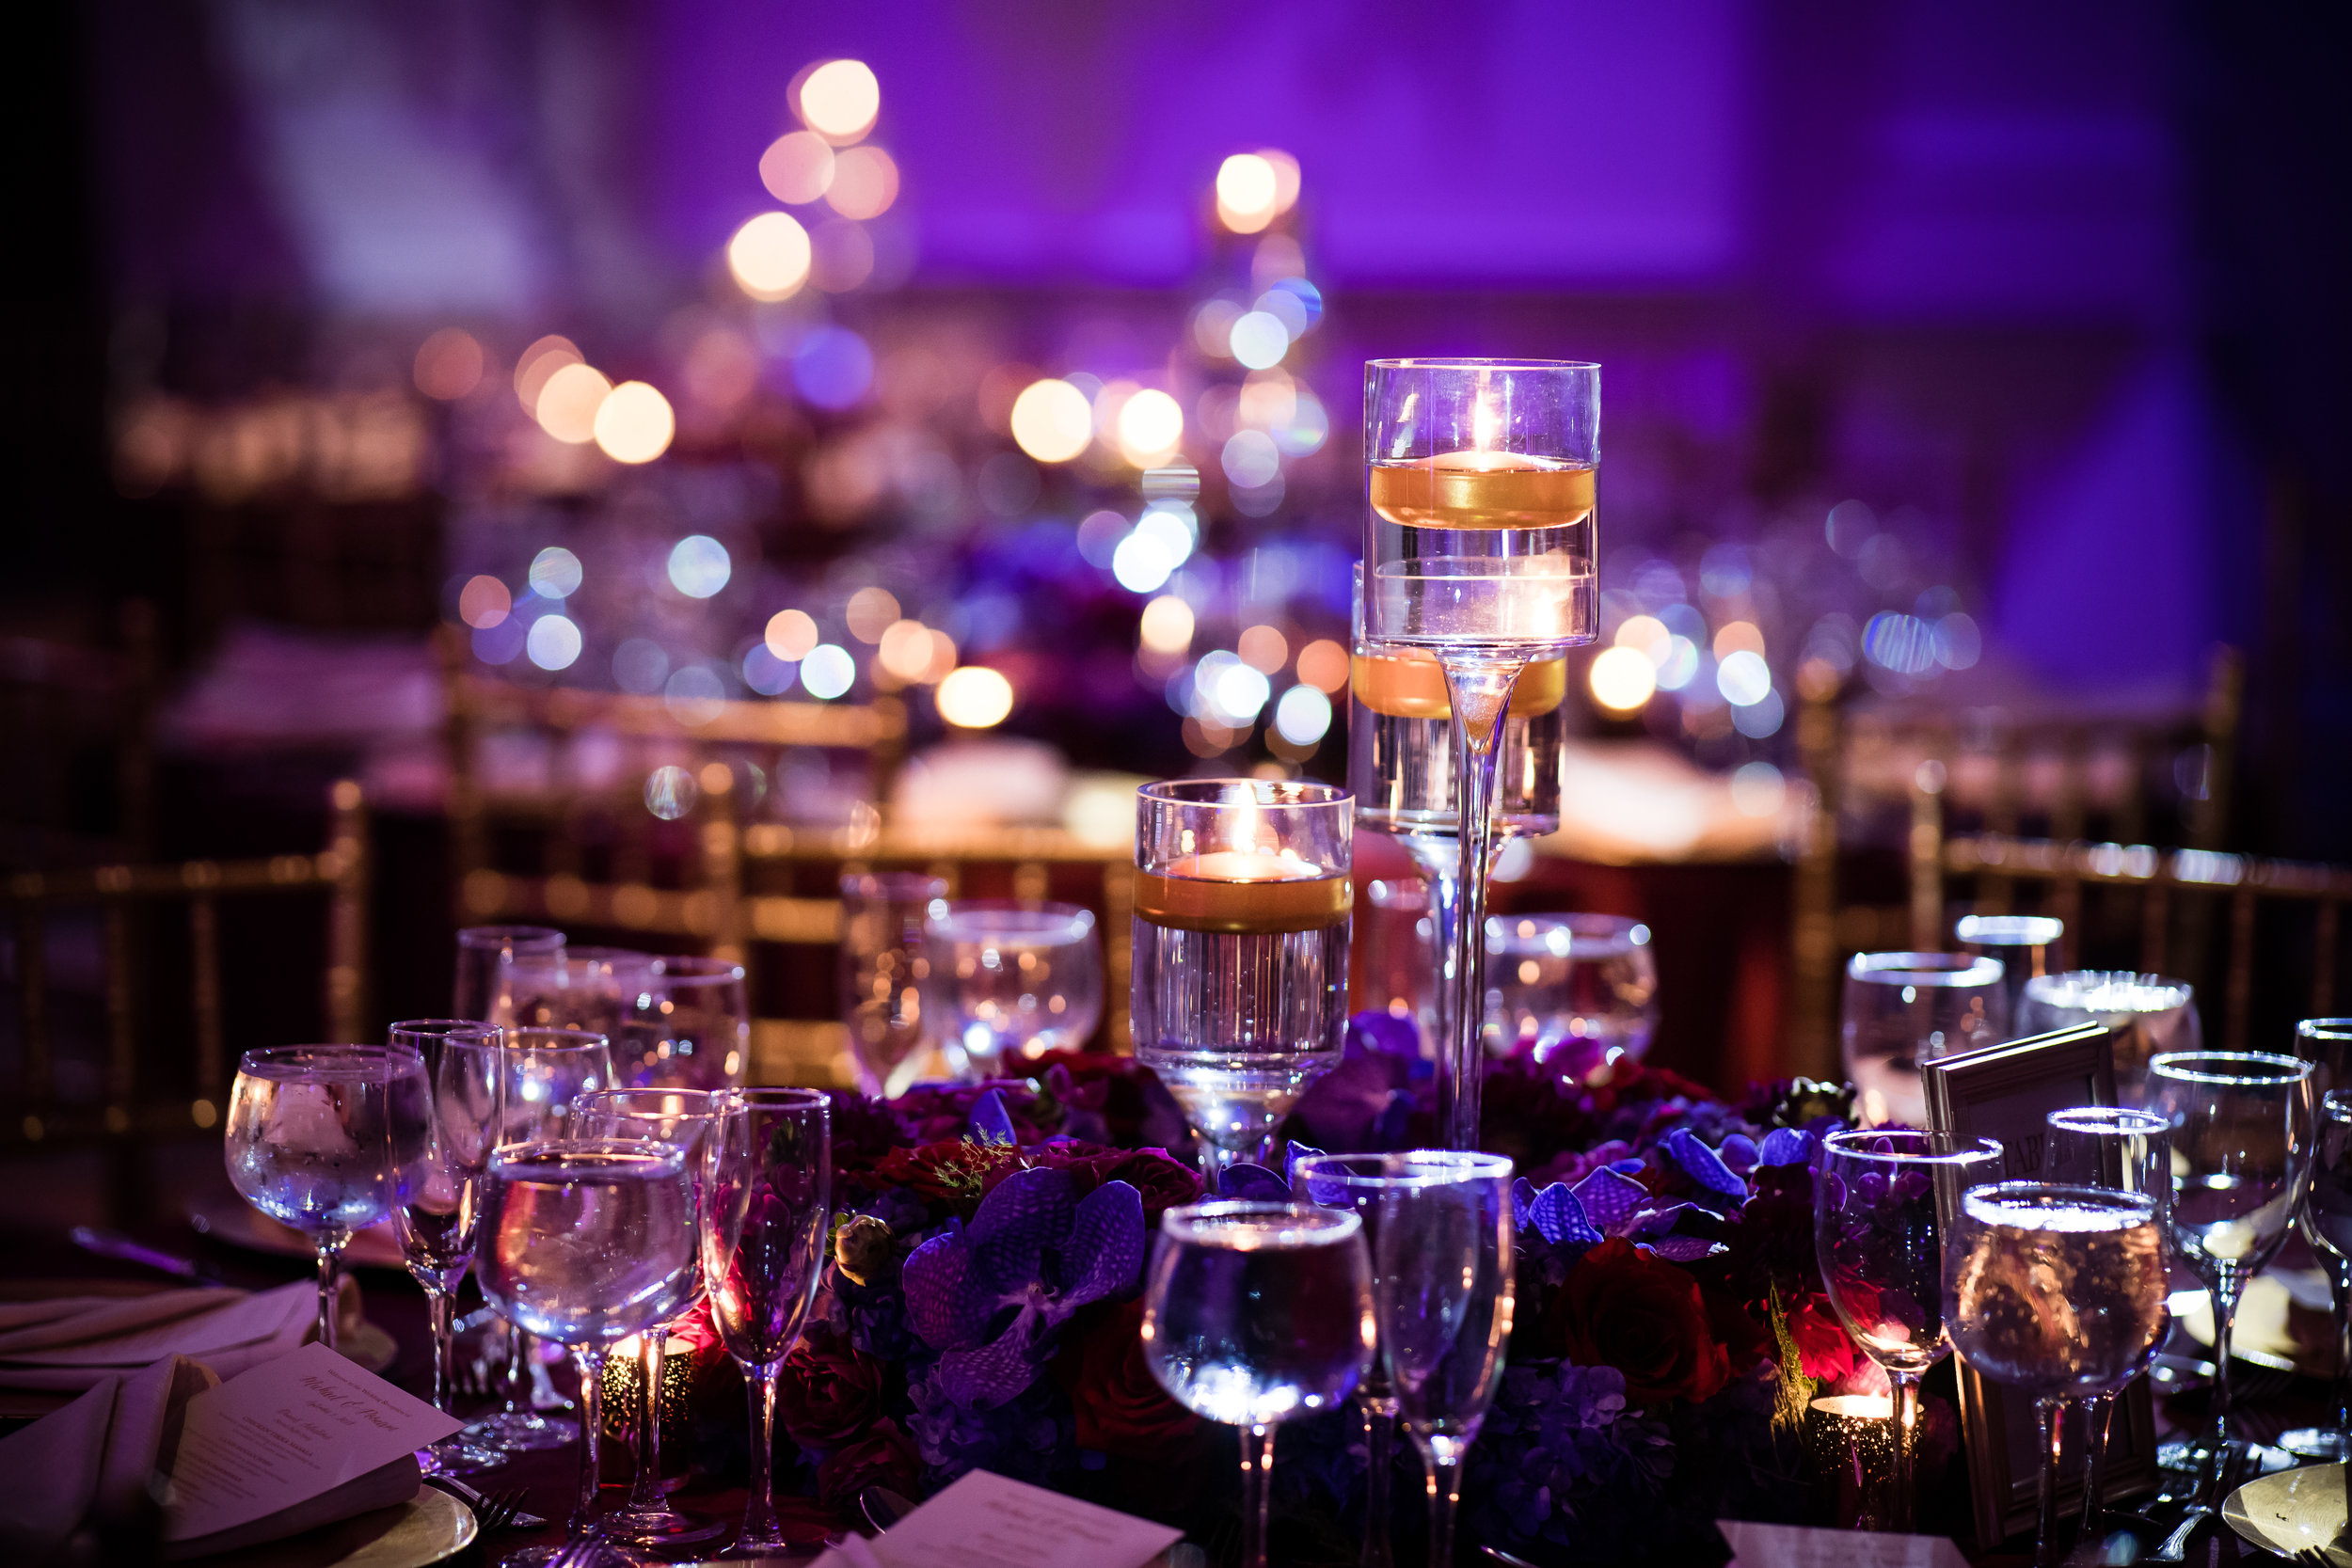 INDIAN WEDDING CLOSE UP TABLE DECOR.jpg